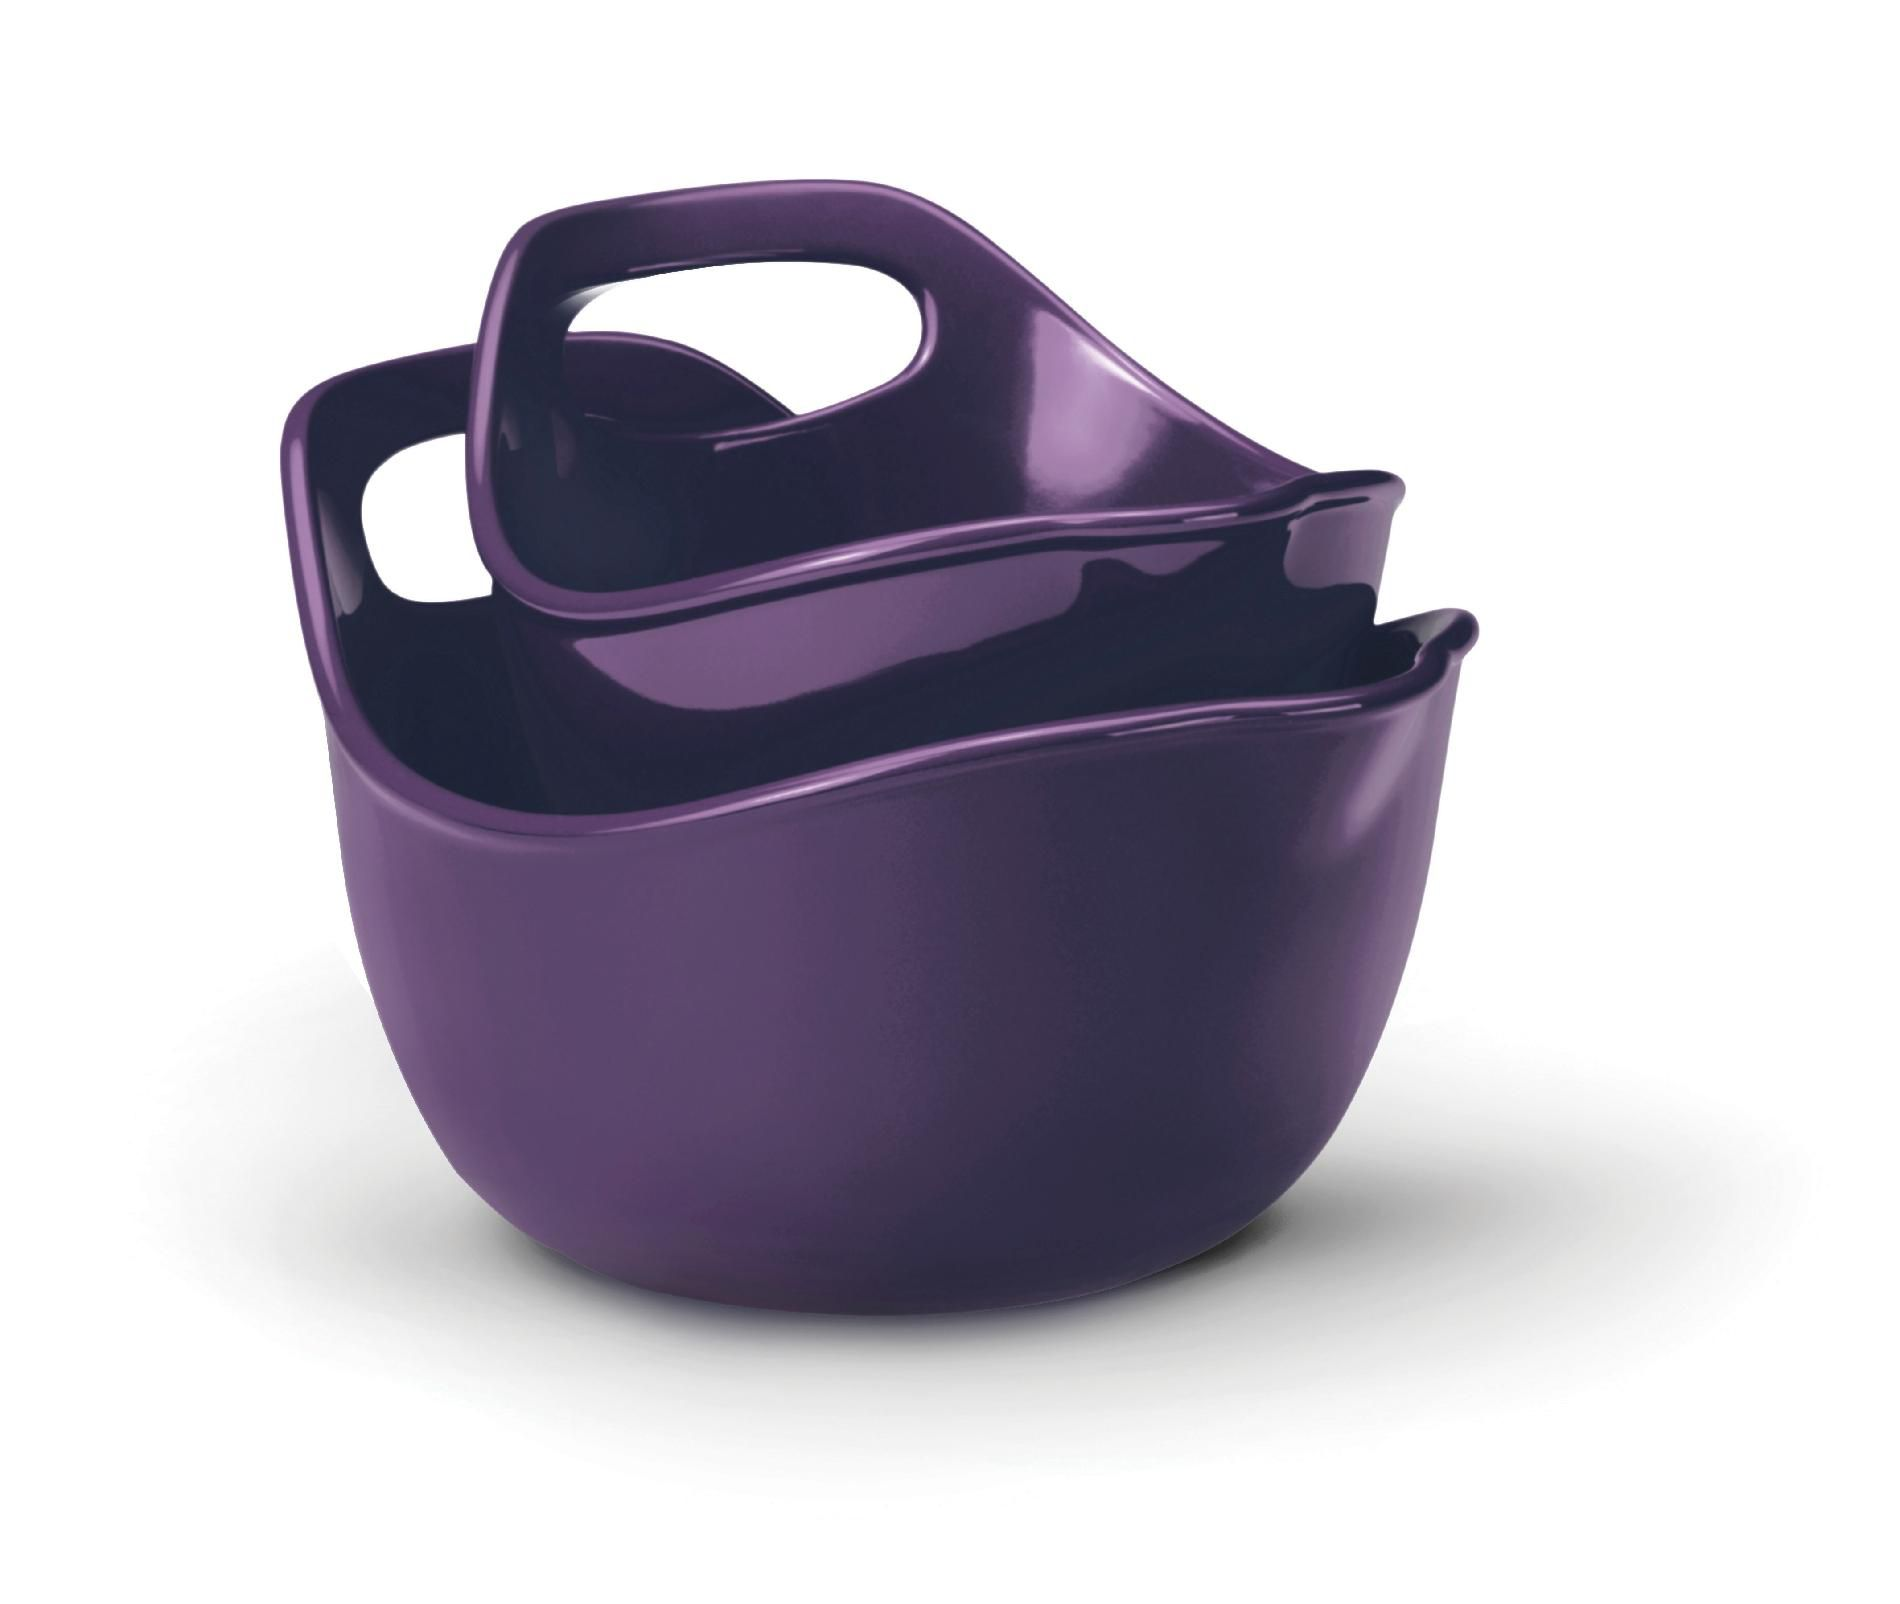 Rachael Ray Stoneware, Mixing Bowls 2-Piece Set: 1-Quart and 2-Quart, Purple PartNumber: 00828836000P KsnValue: 00828836000 MfgPartNumber: 58068